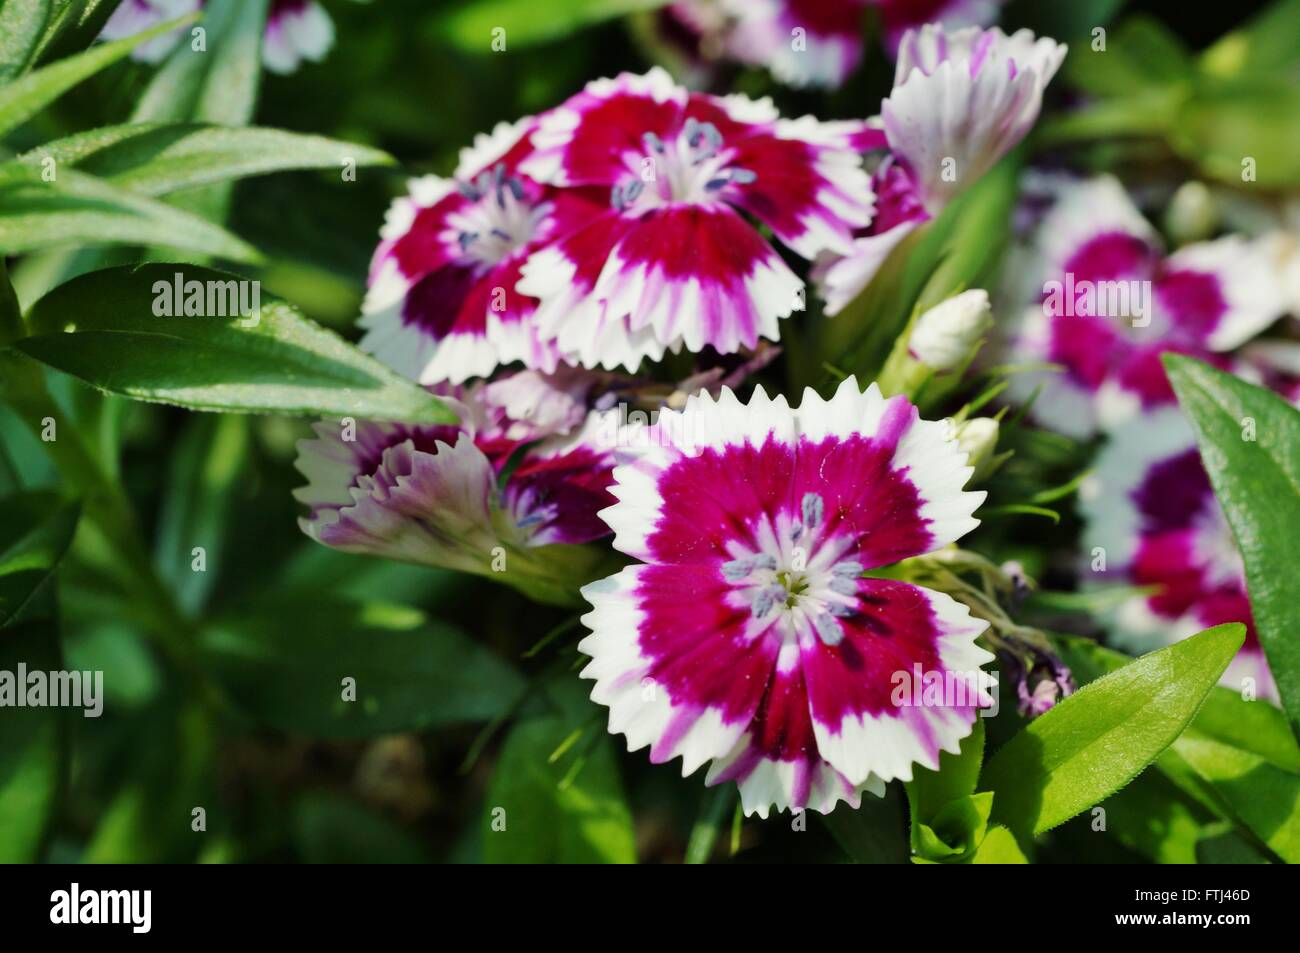 Pink And White Sweet William Dianthus Flowers Stock Photo 101202037